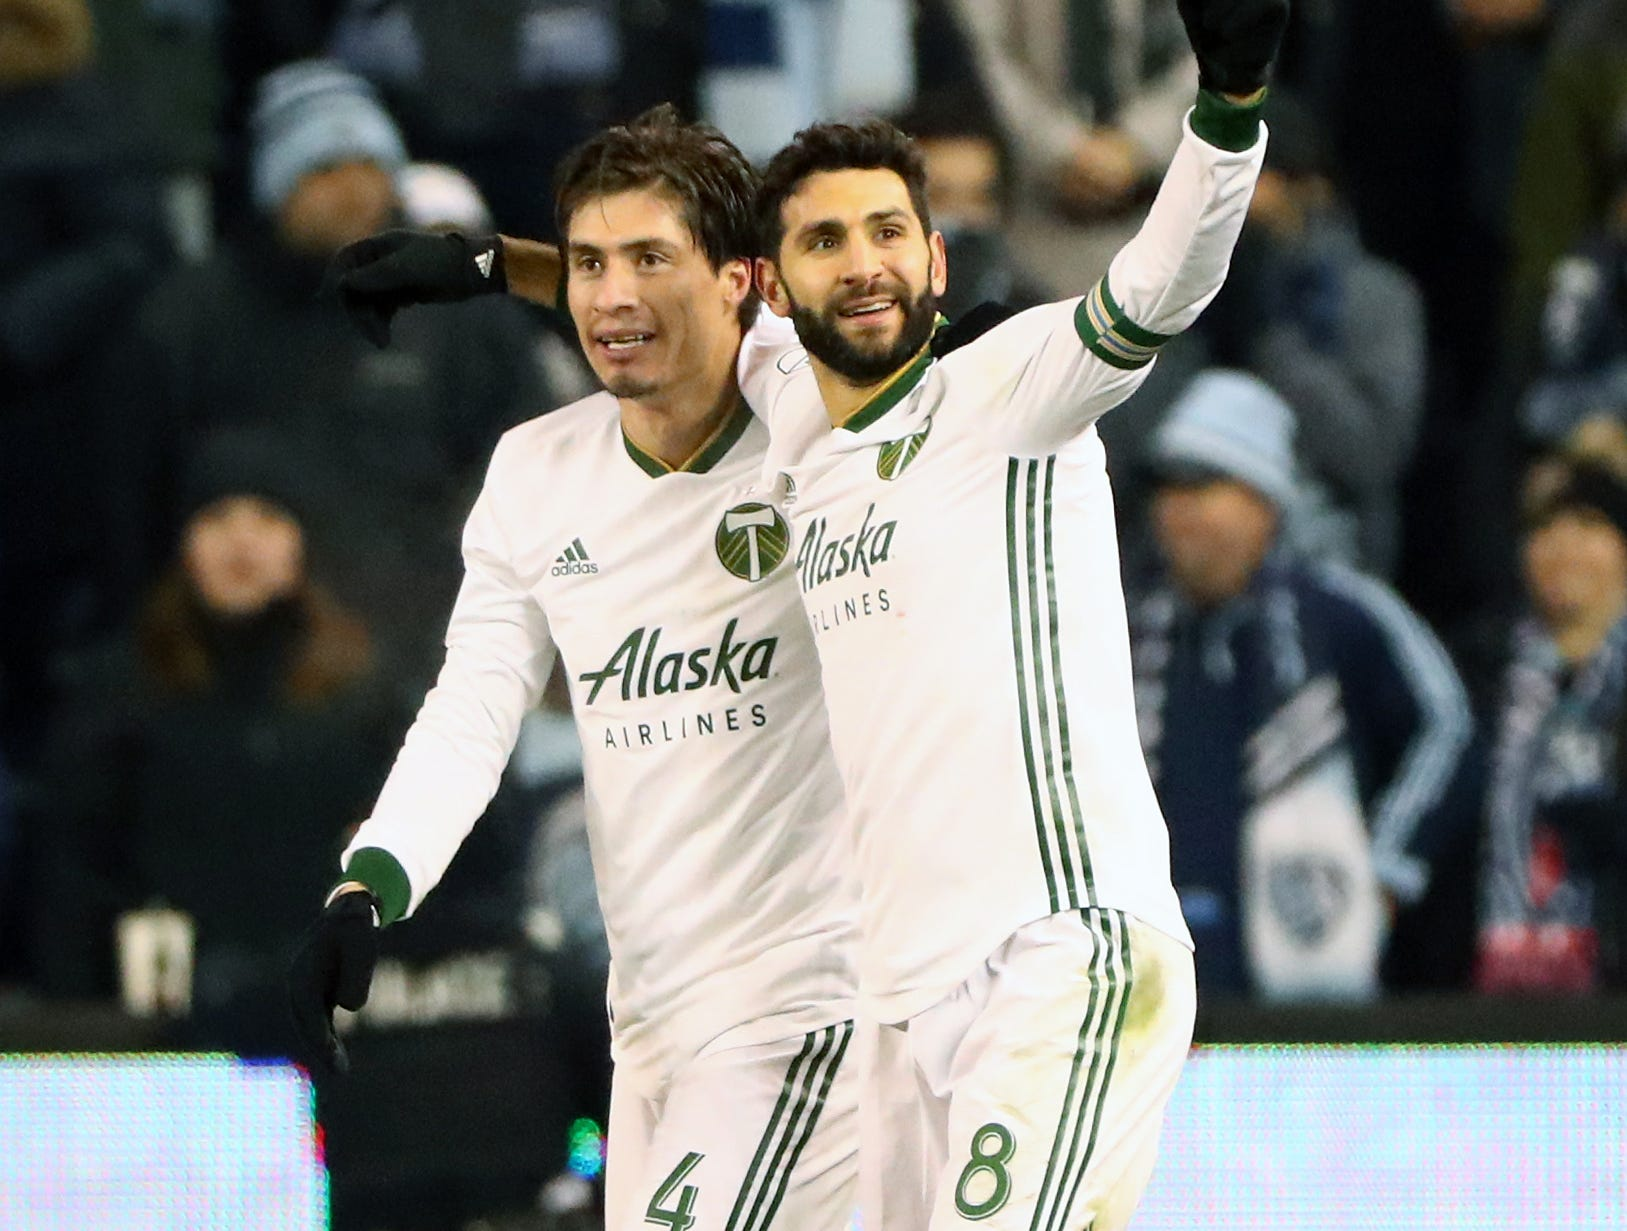 Nov 29, 2018; Kansas City, KS, USA; Portland Timbers midfielder Diego Valeri (8) celebrates with defender Jorge Villafana (4) after scoring a goal against the Sporting Kansas City during the second half in the second leg of the MLS Western Conference Championship at Children's Mercy Park. Mandatory Credit: Jay Biggerstaff-USA TODAY Sports